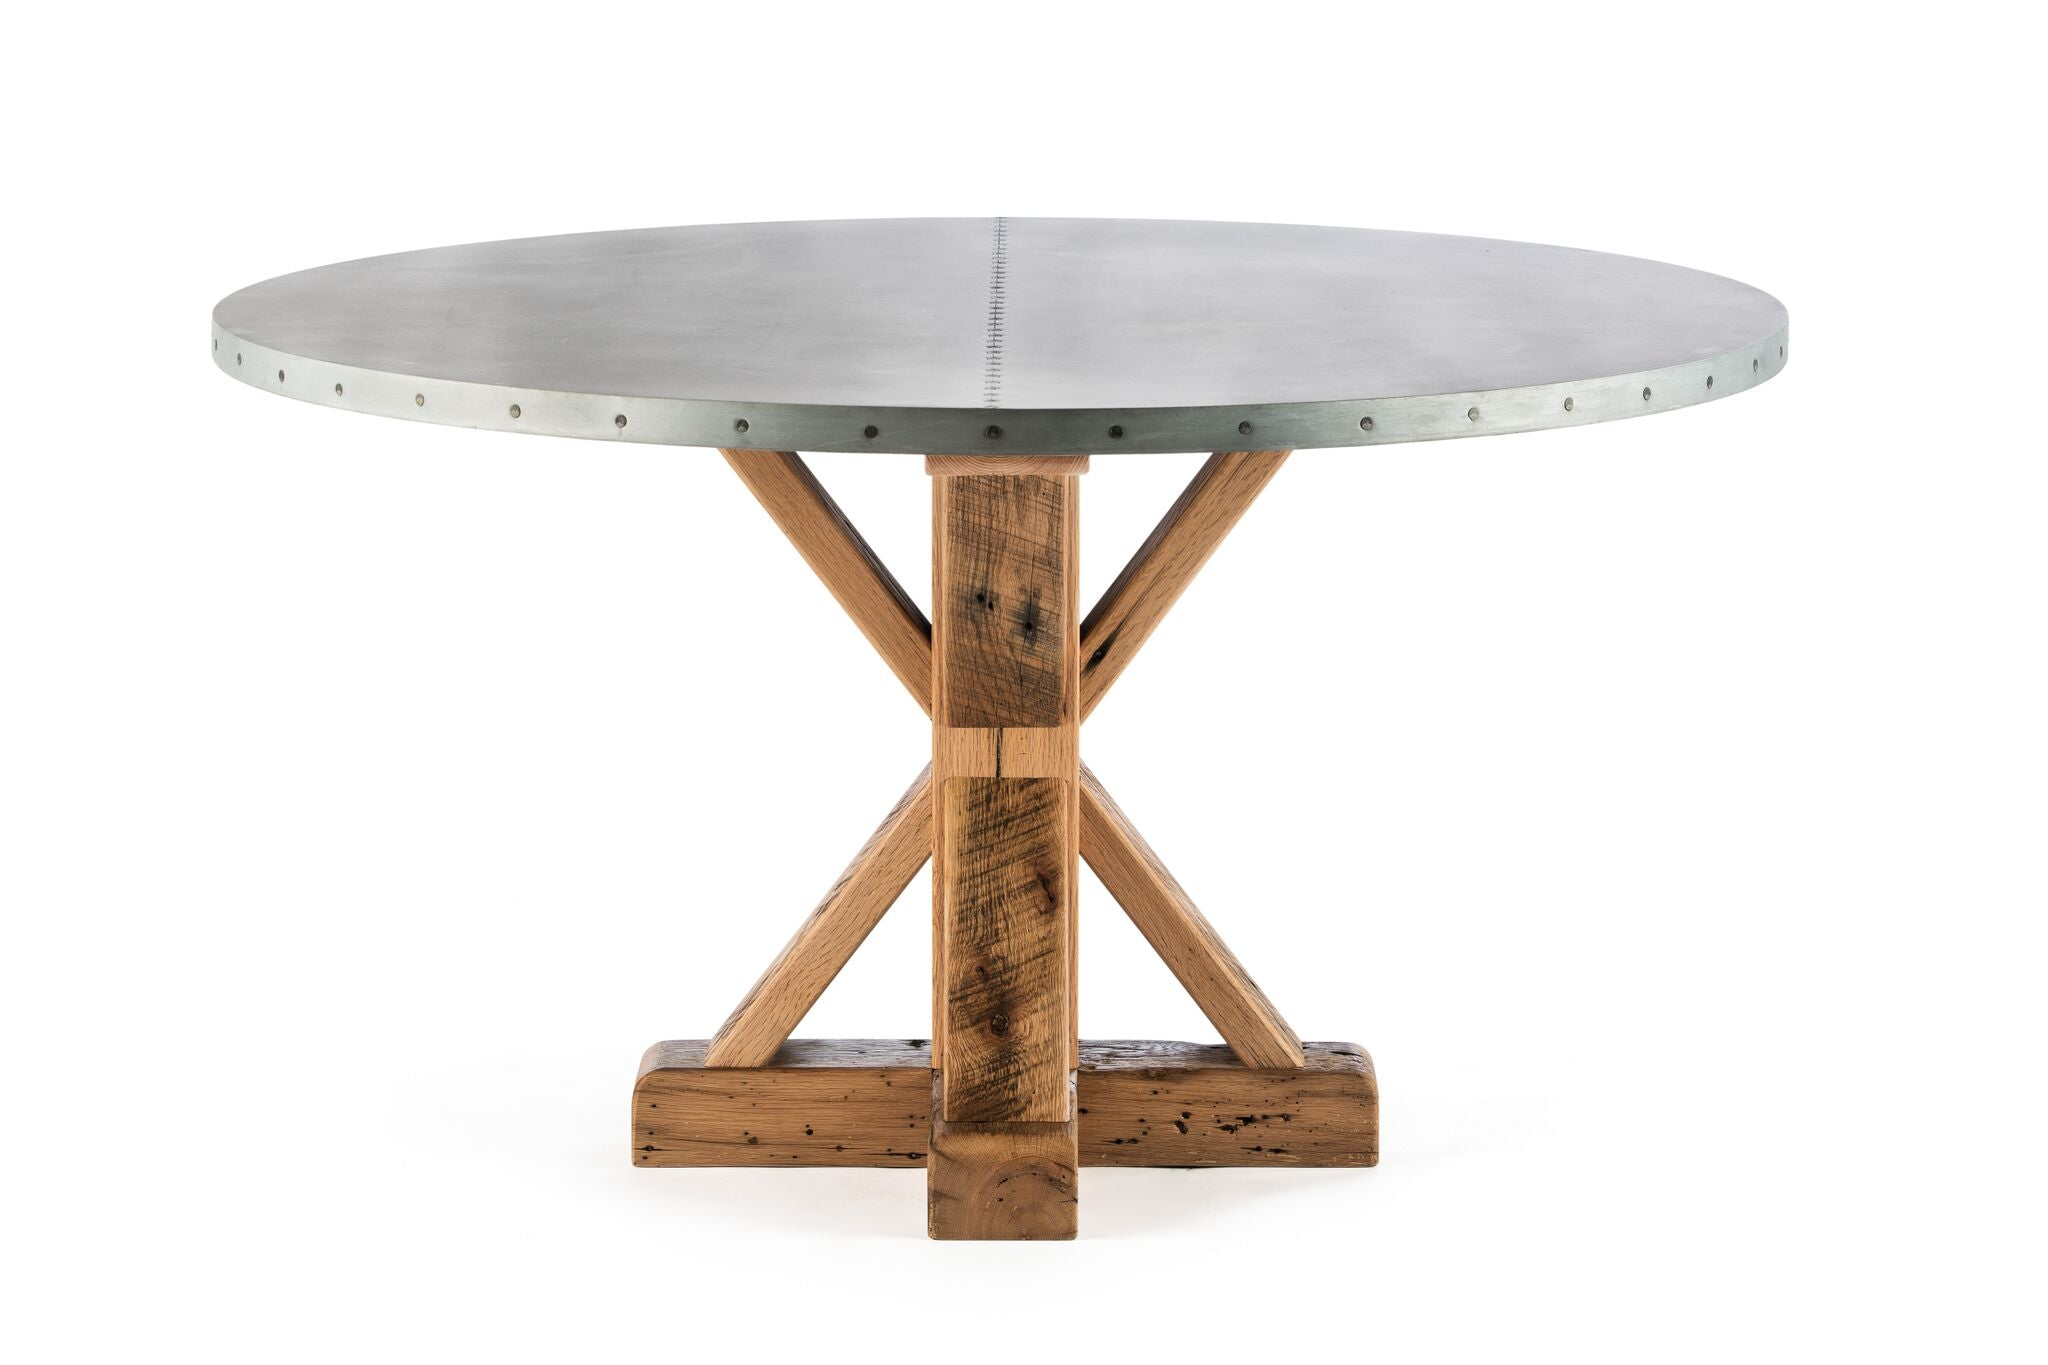 "Zinc Round Tables | French Trestle Table | BLACKENED BRONZE | Americana on Reclaimed Oak | CUSTOM SIZE D 48 H 30 | 1.5"" Standard 